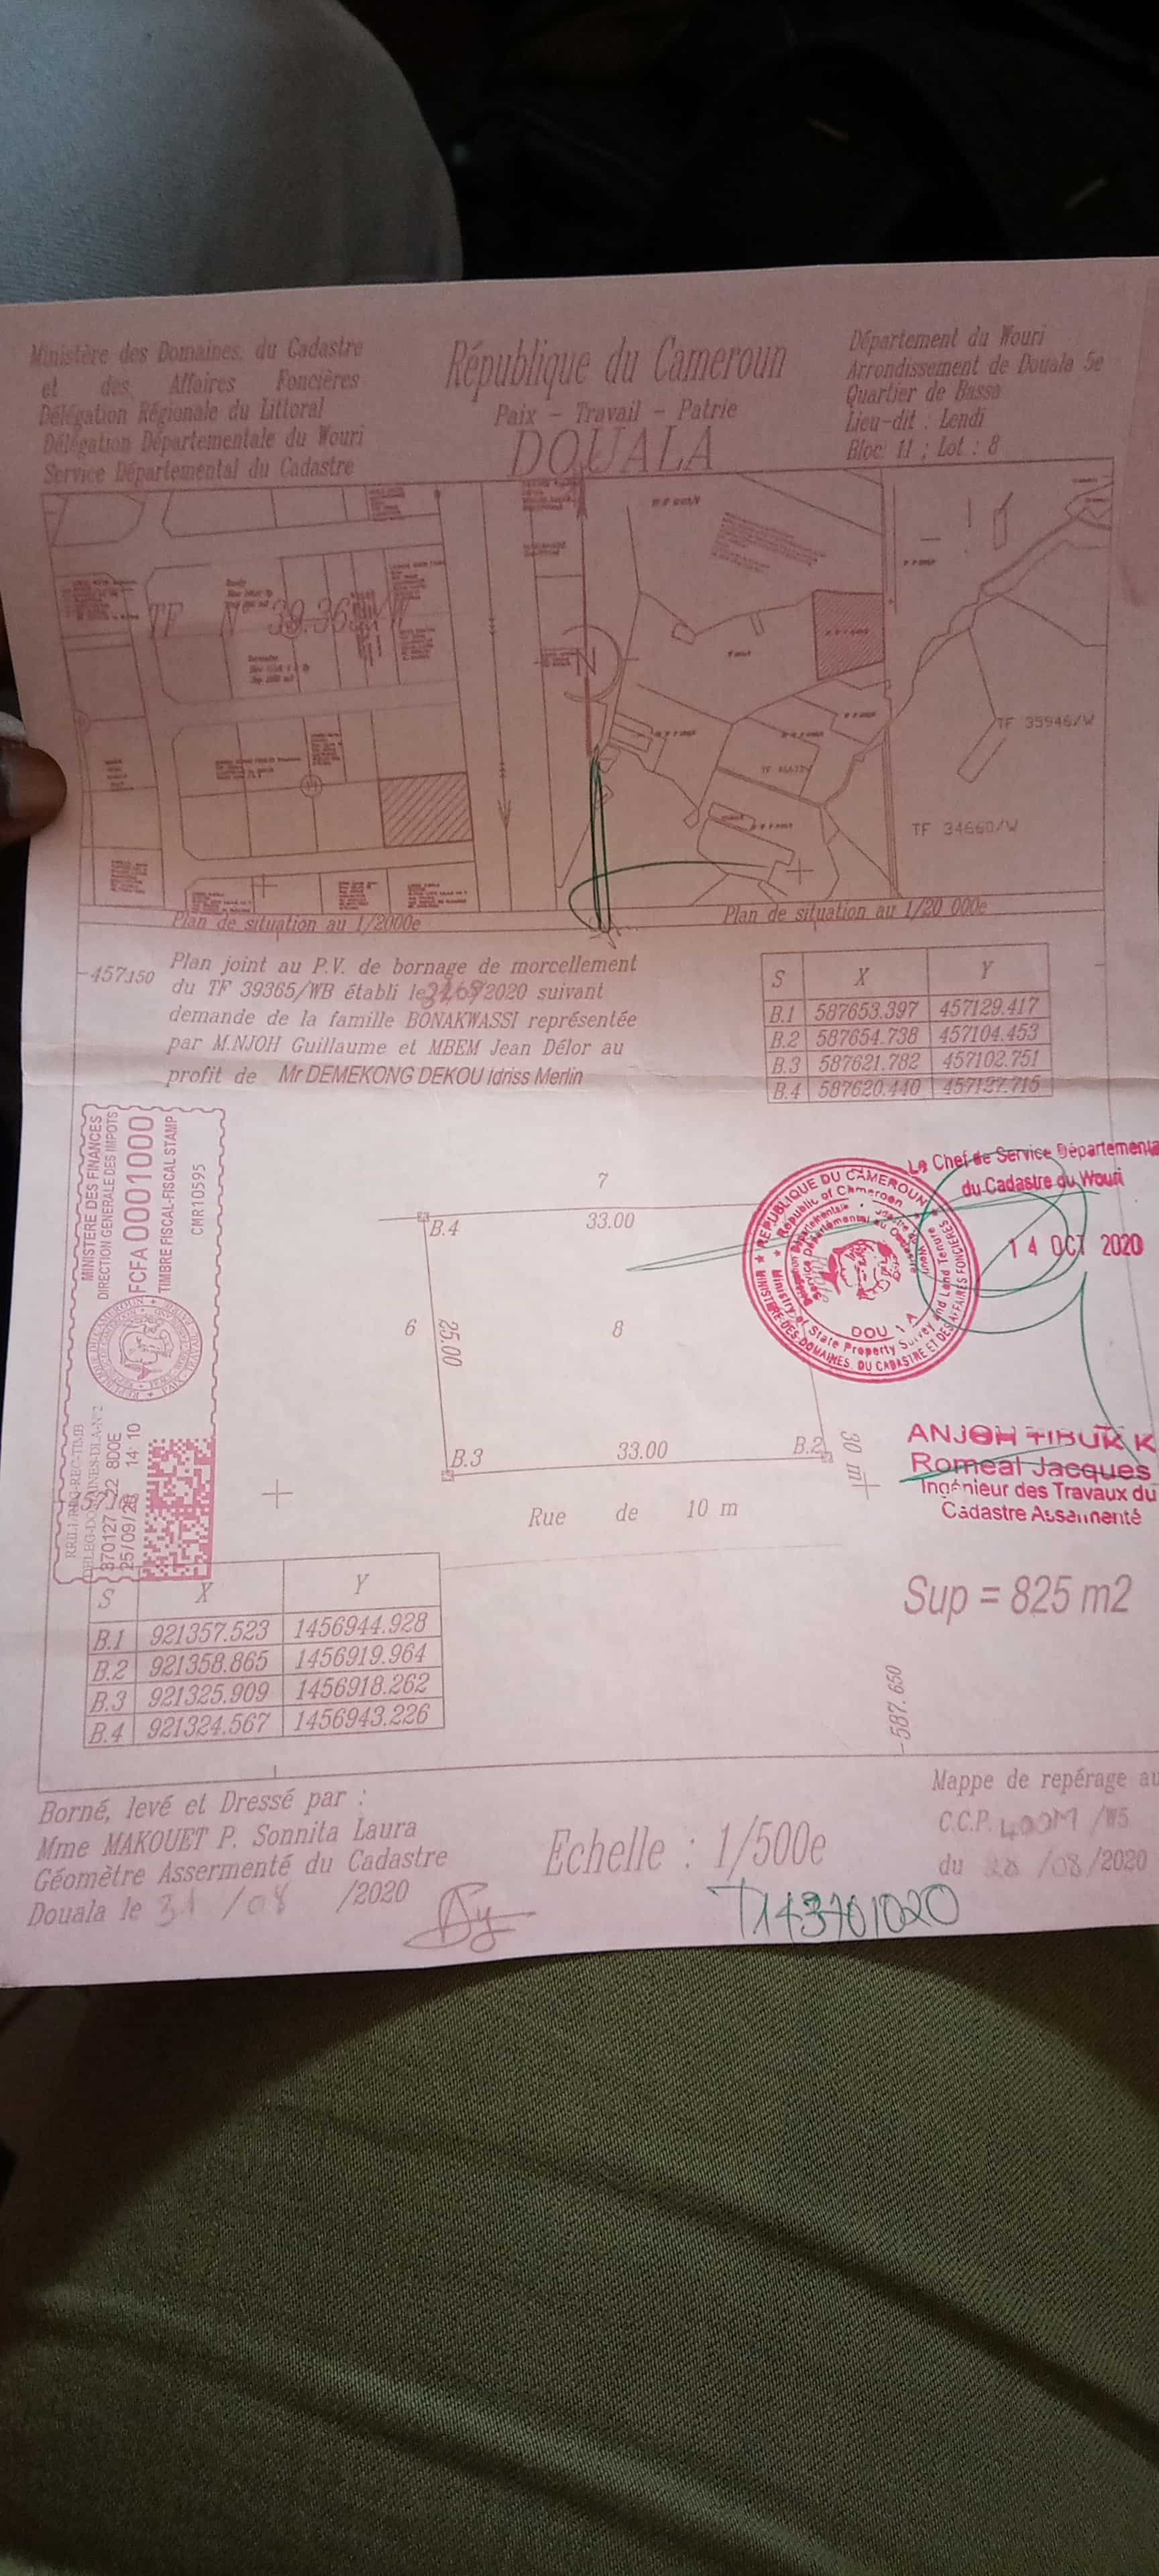 Land for sale at Douala, Lendi, Ver le quartier général - 200 m2 - 3 000 000 FCFA